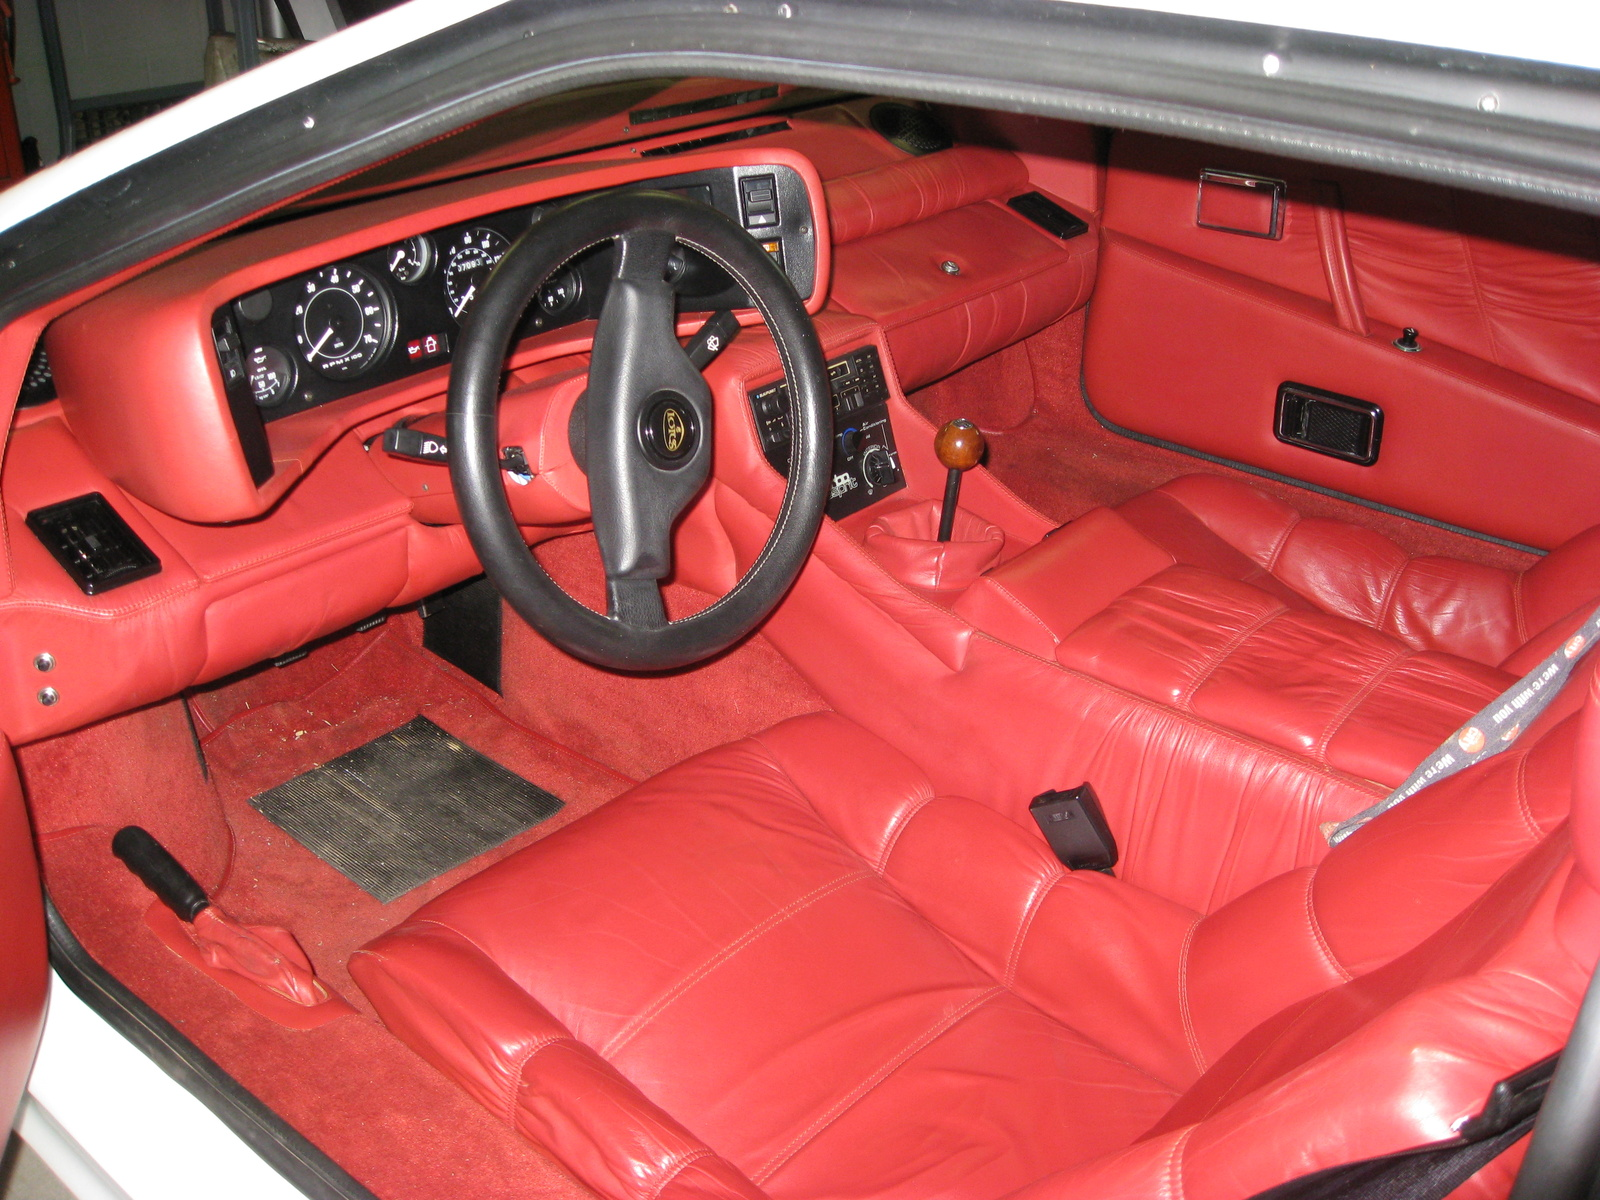 Lotus Esprit interior #3